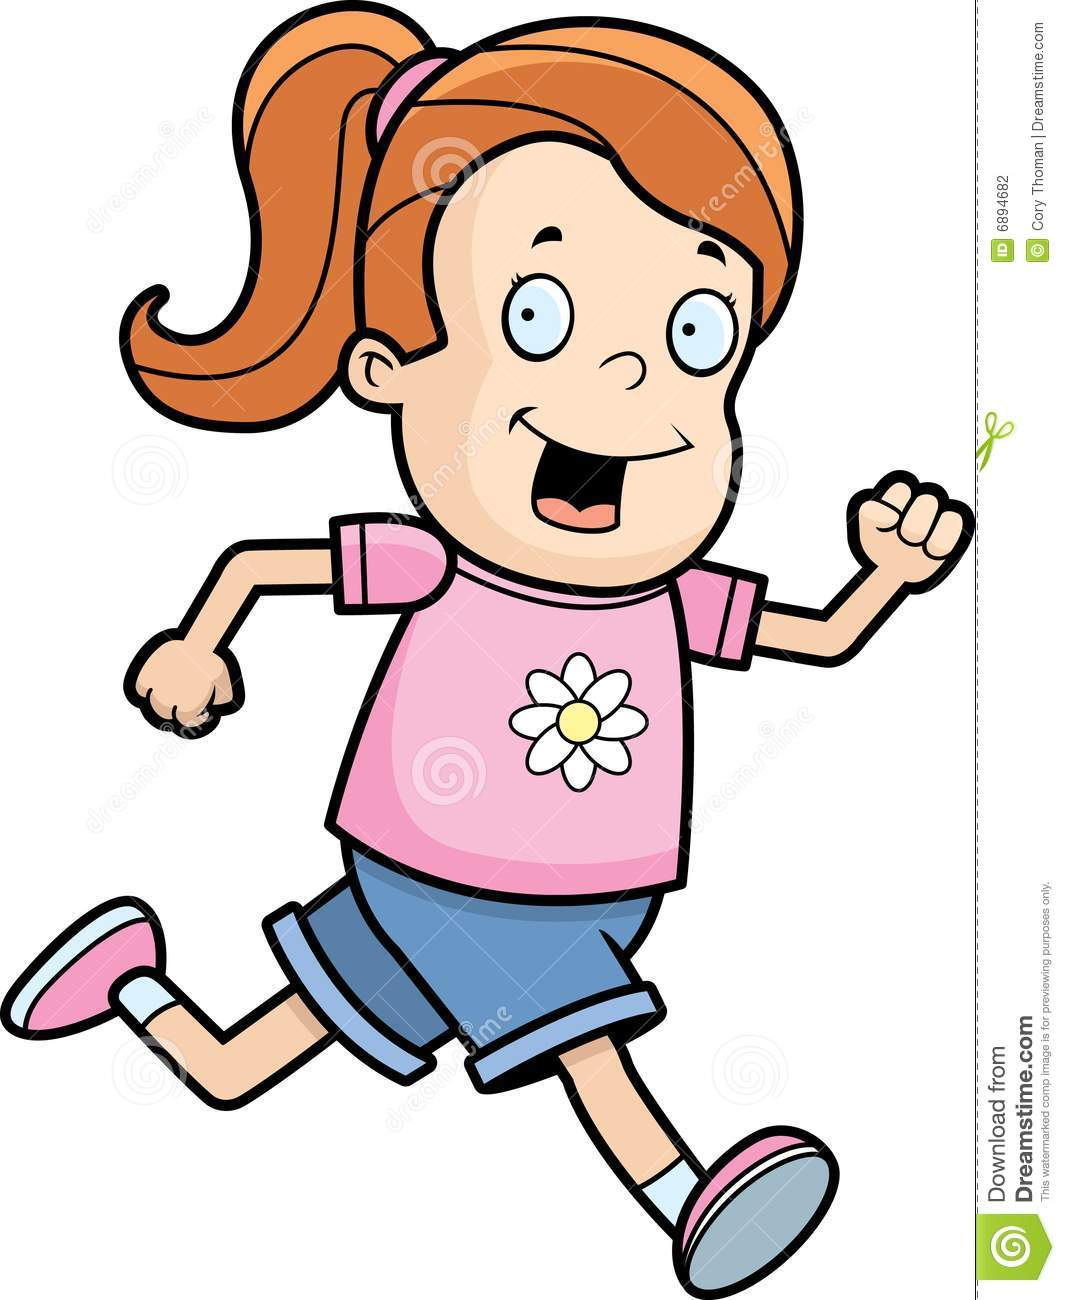 Running Cartoon Displaying 18 Images For Kid Running Cartoon Toolbar